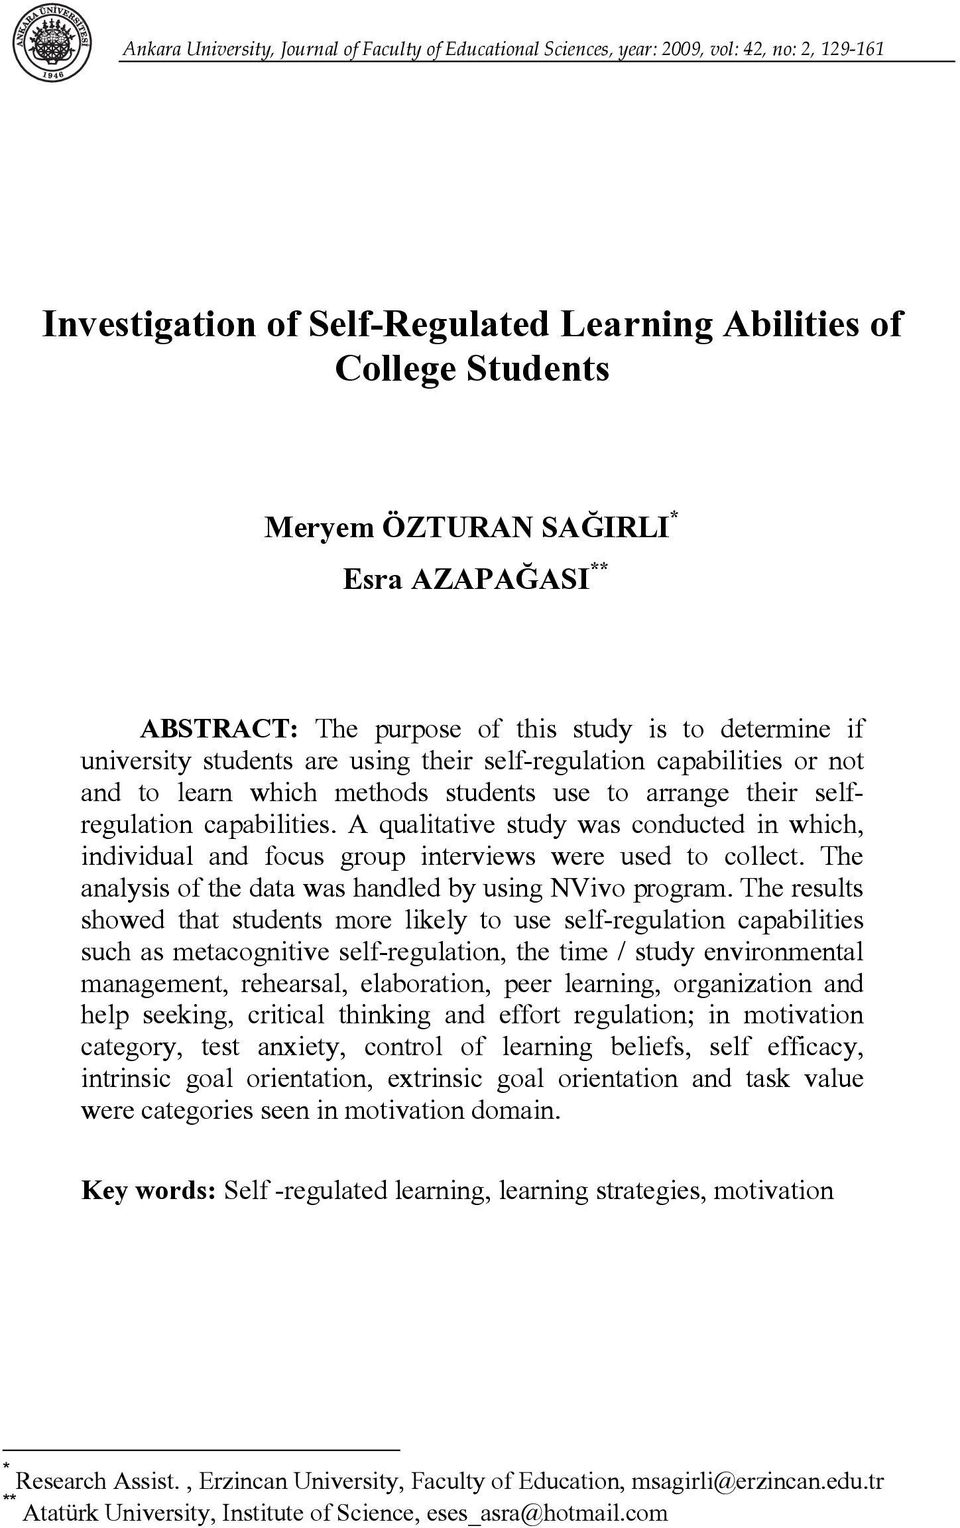 selfregulation capabilities. A qualitative study was conducted in which, individual and focus group interviews were used to collect. The analysis of the data was handled by using NVivo program.